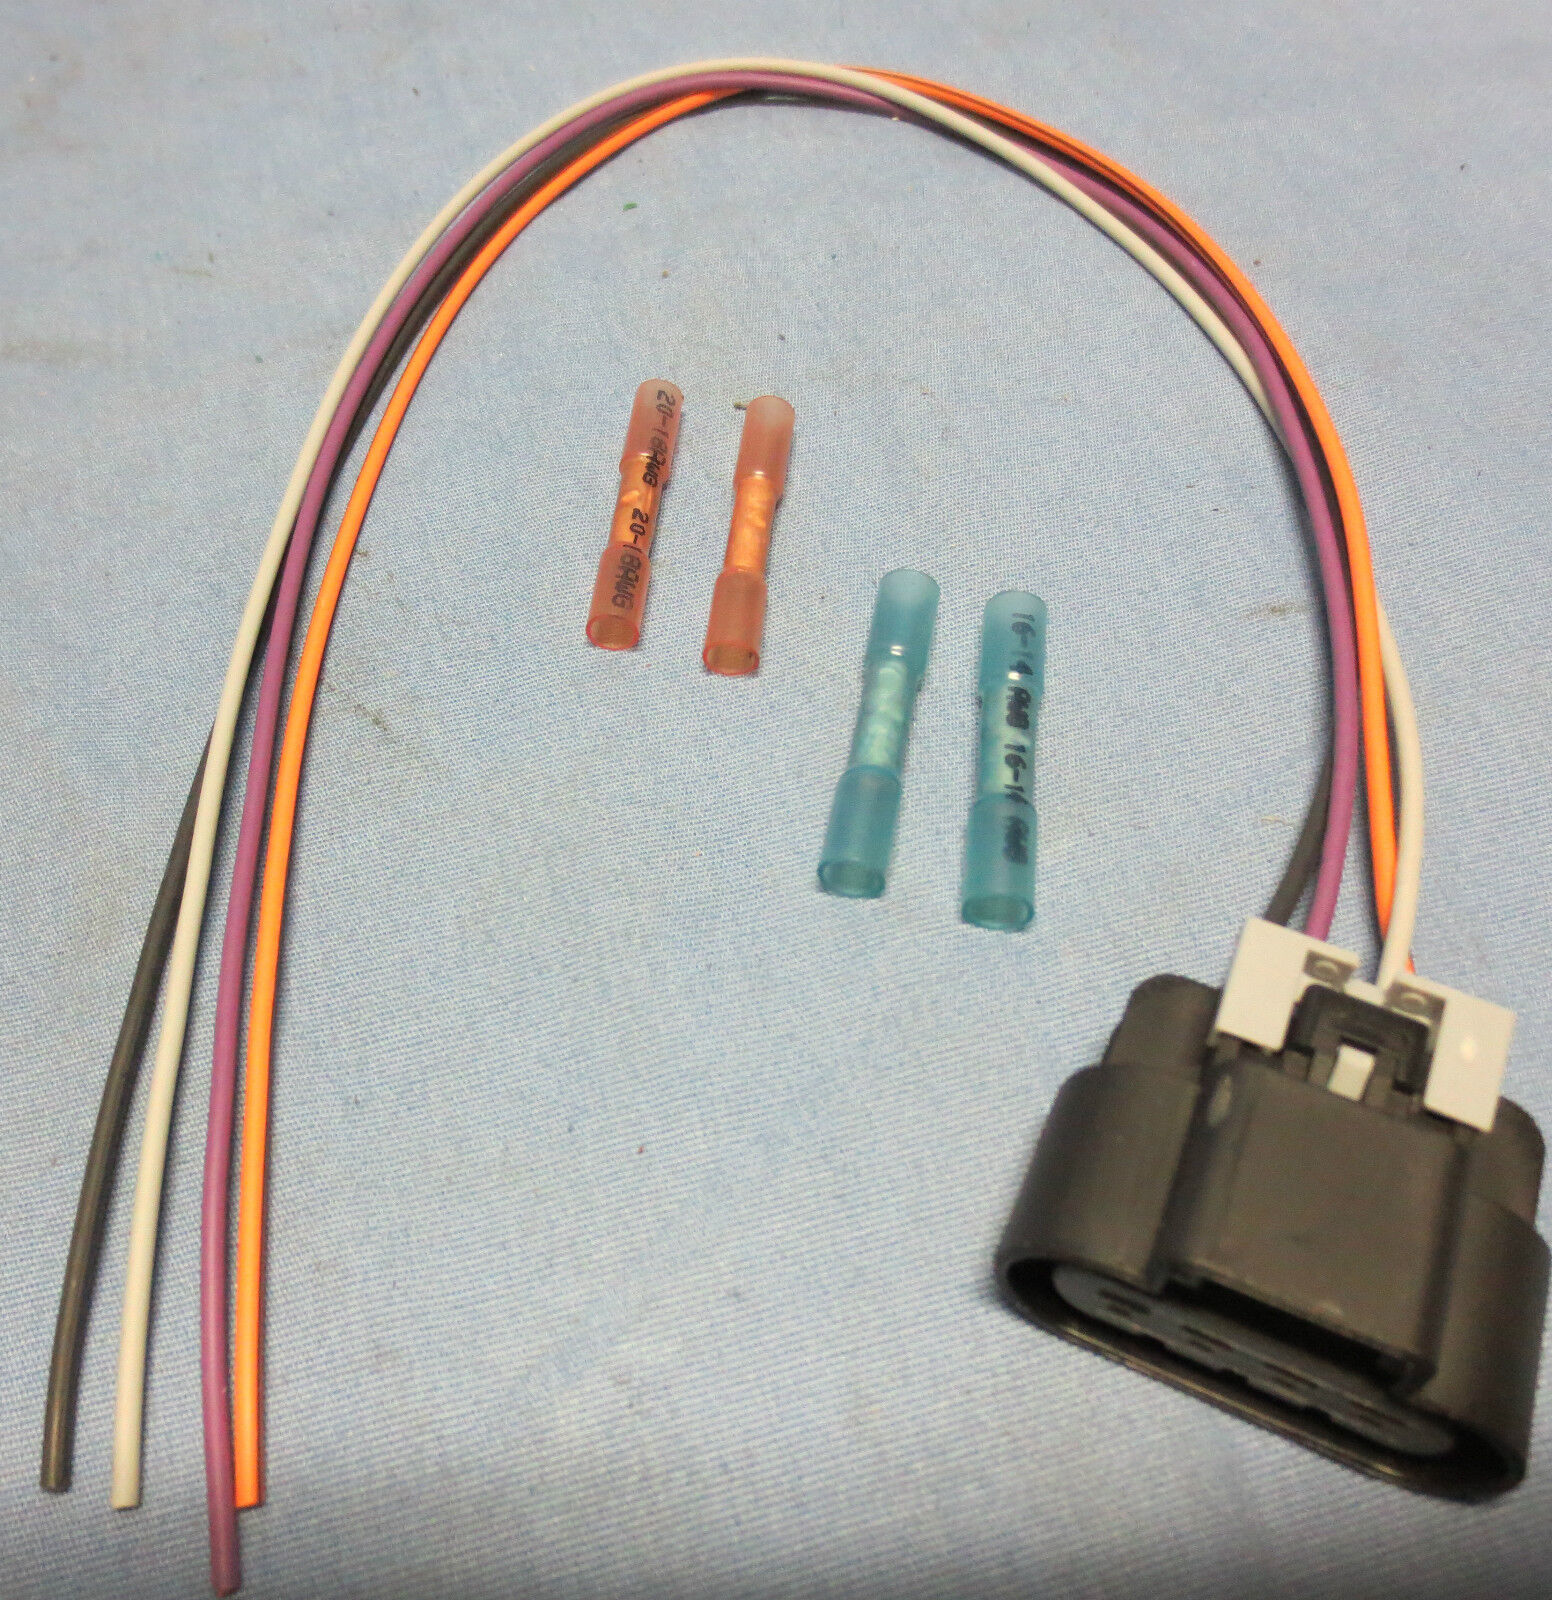 Gm 28084479 Fuel Pump Wiring Harness Kit Silverado Tahoe Suburban New Surplus